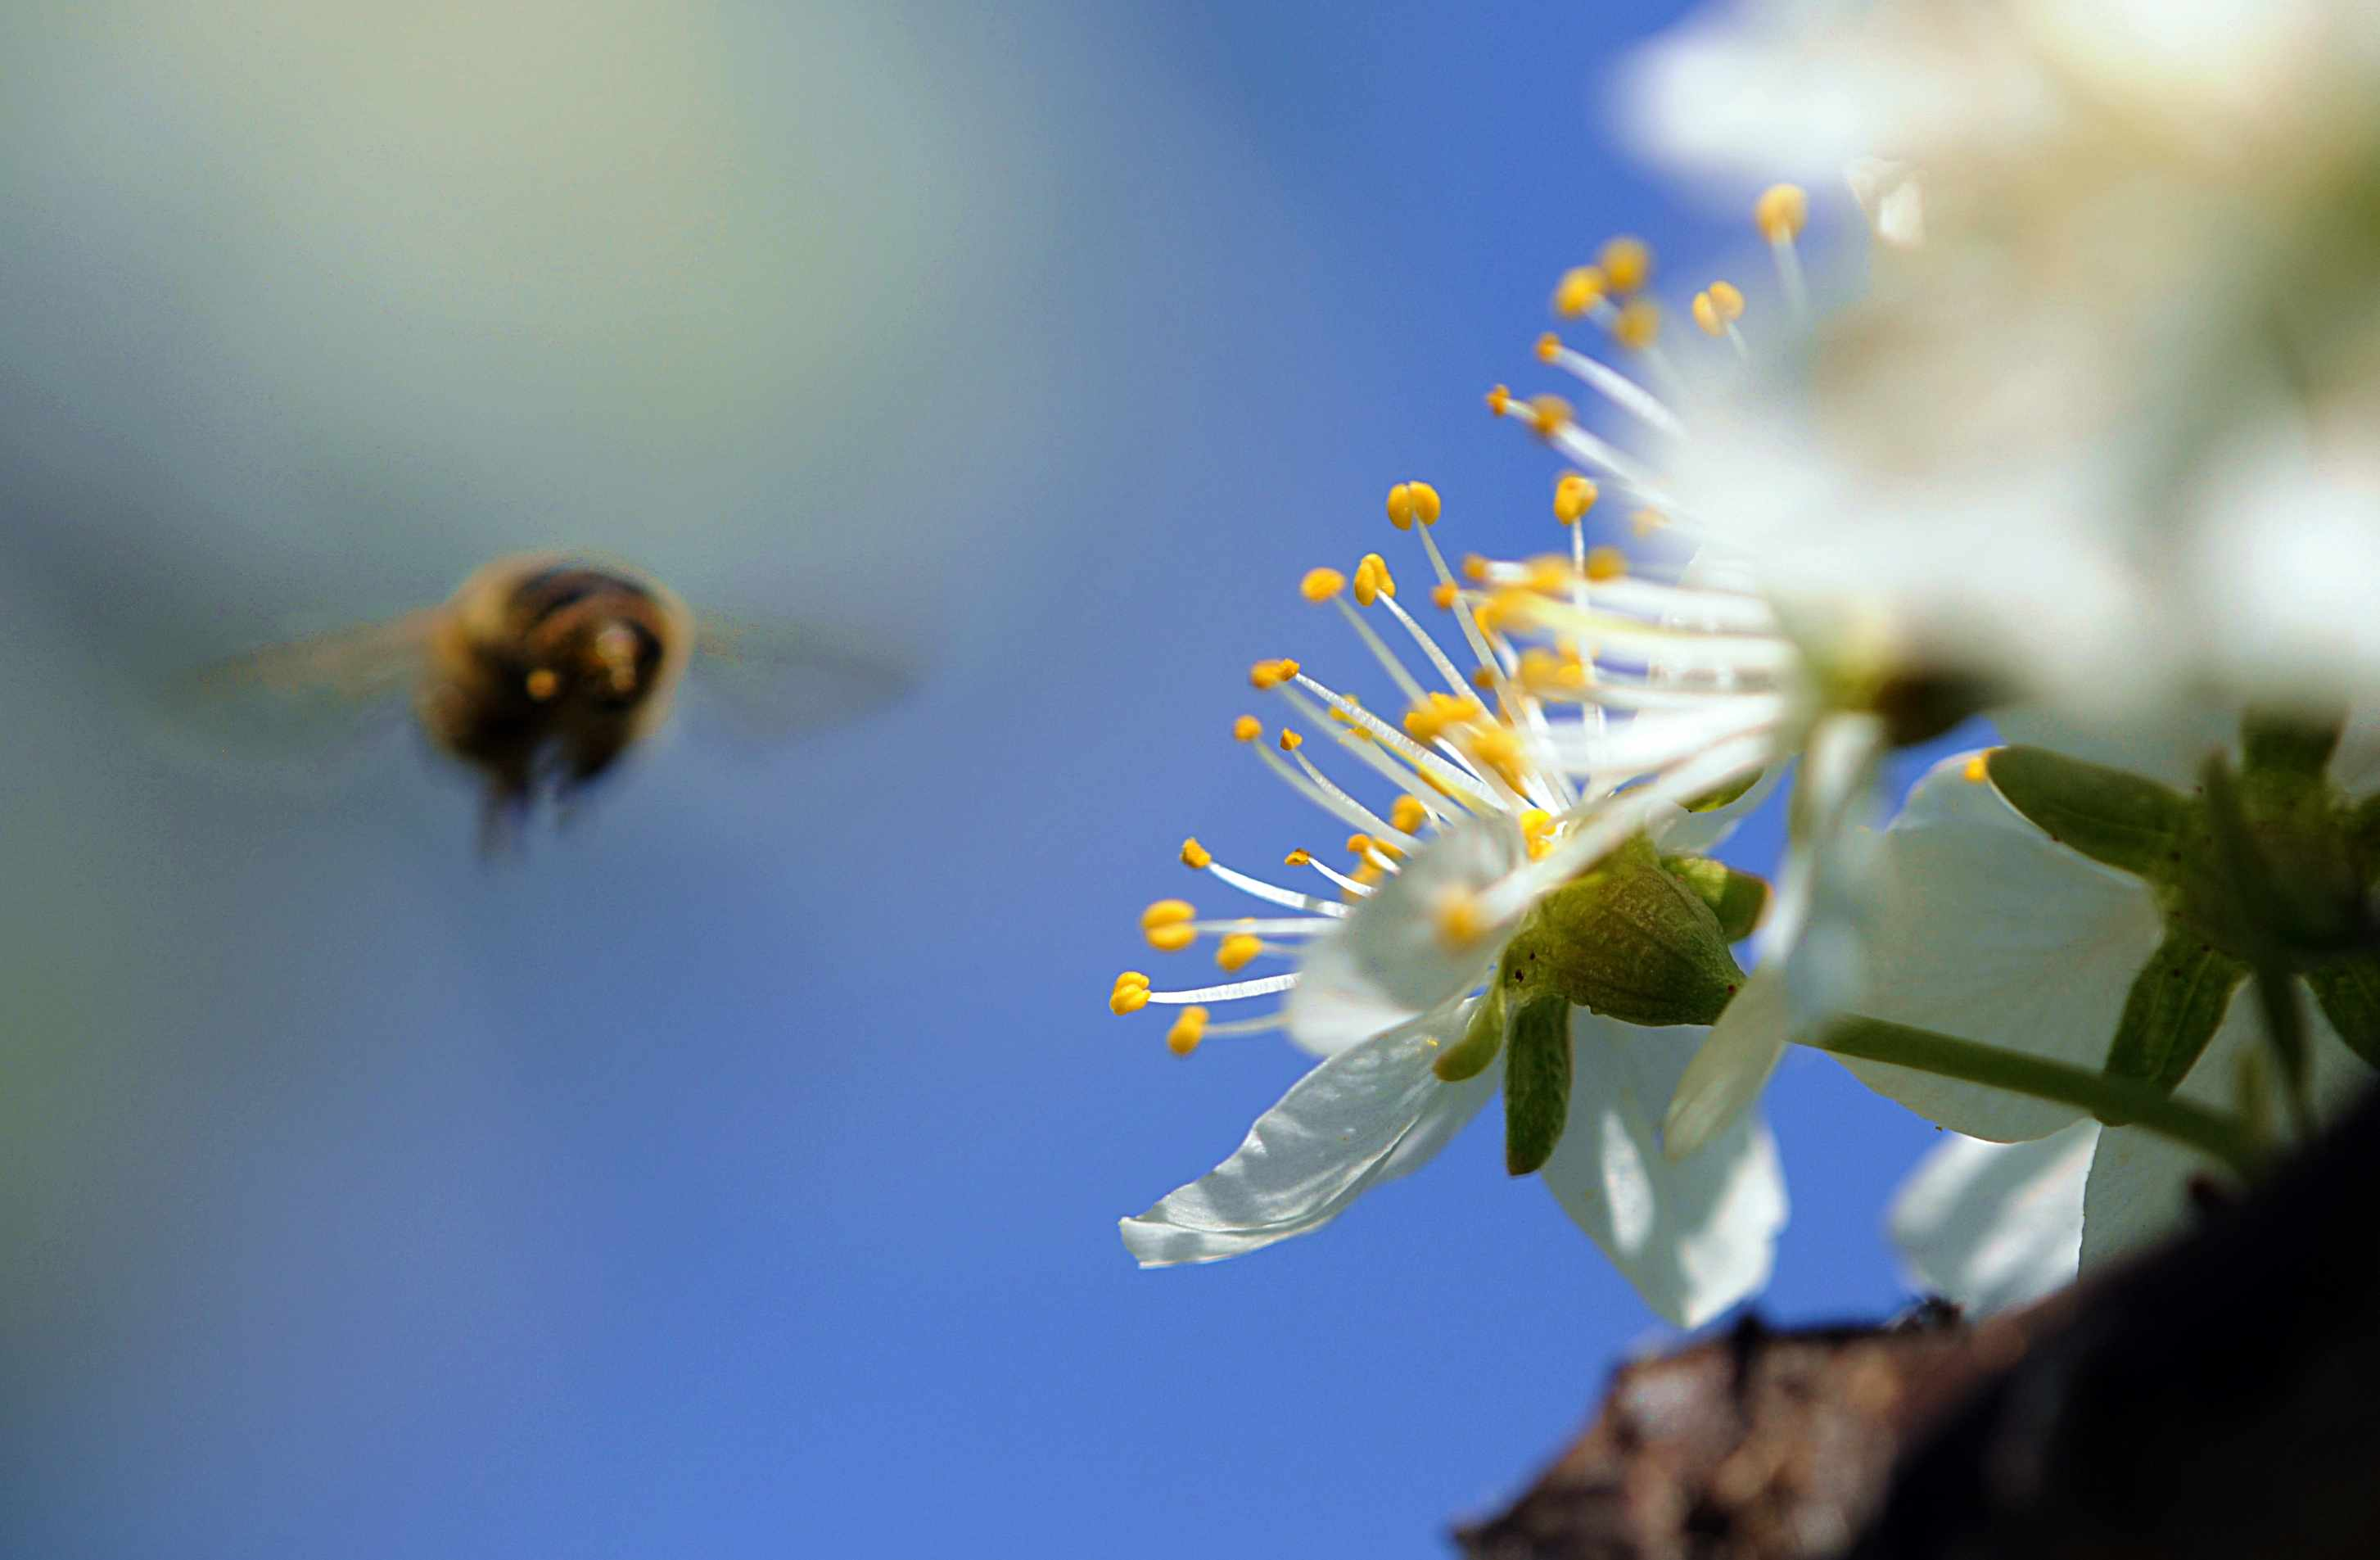 Action shot of a bee flying towards white flowers.